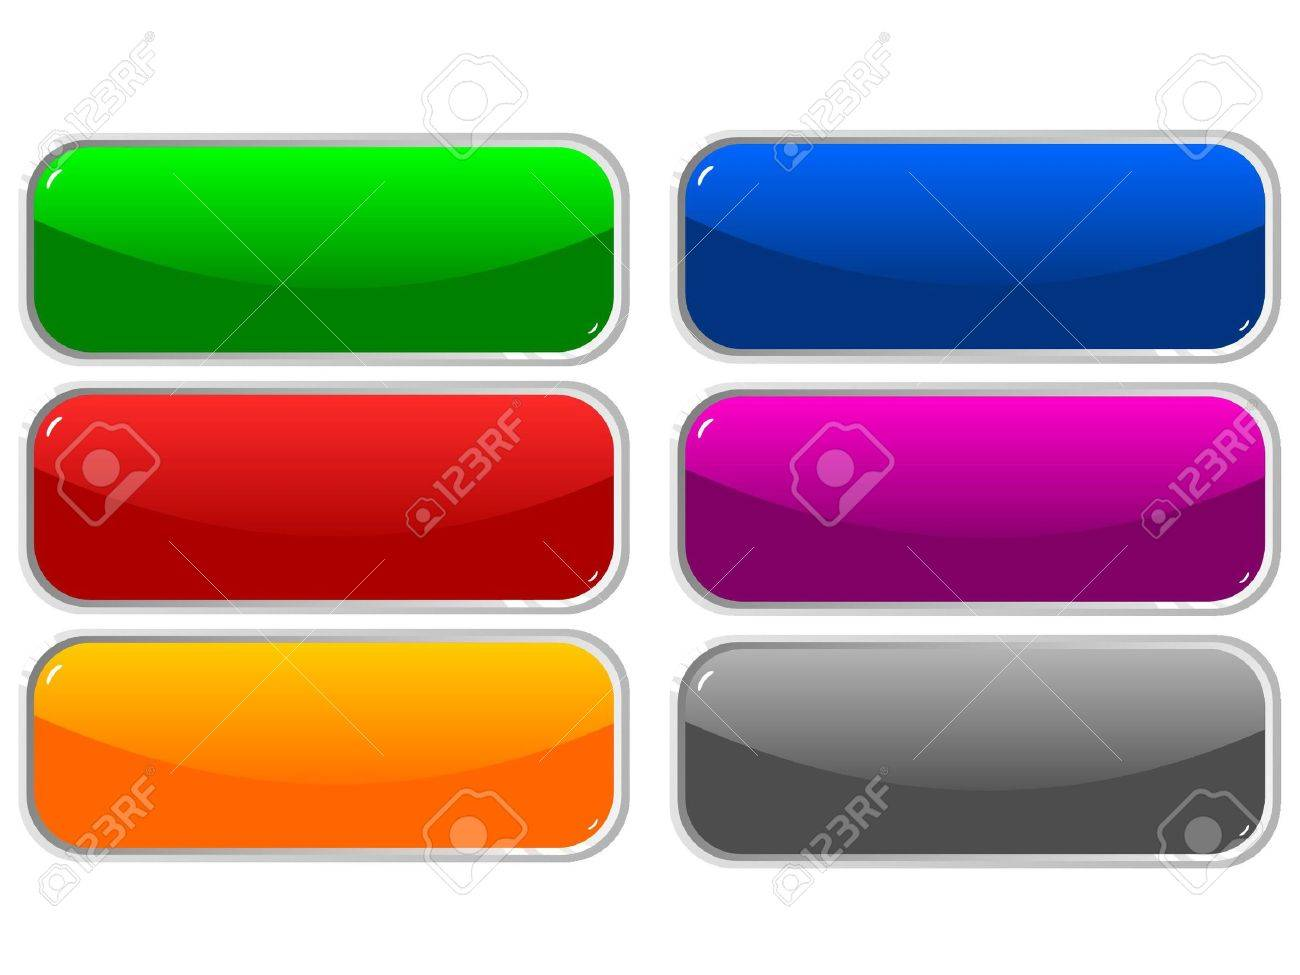 Web shiny buttons illustration Stock Vector - 12976363